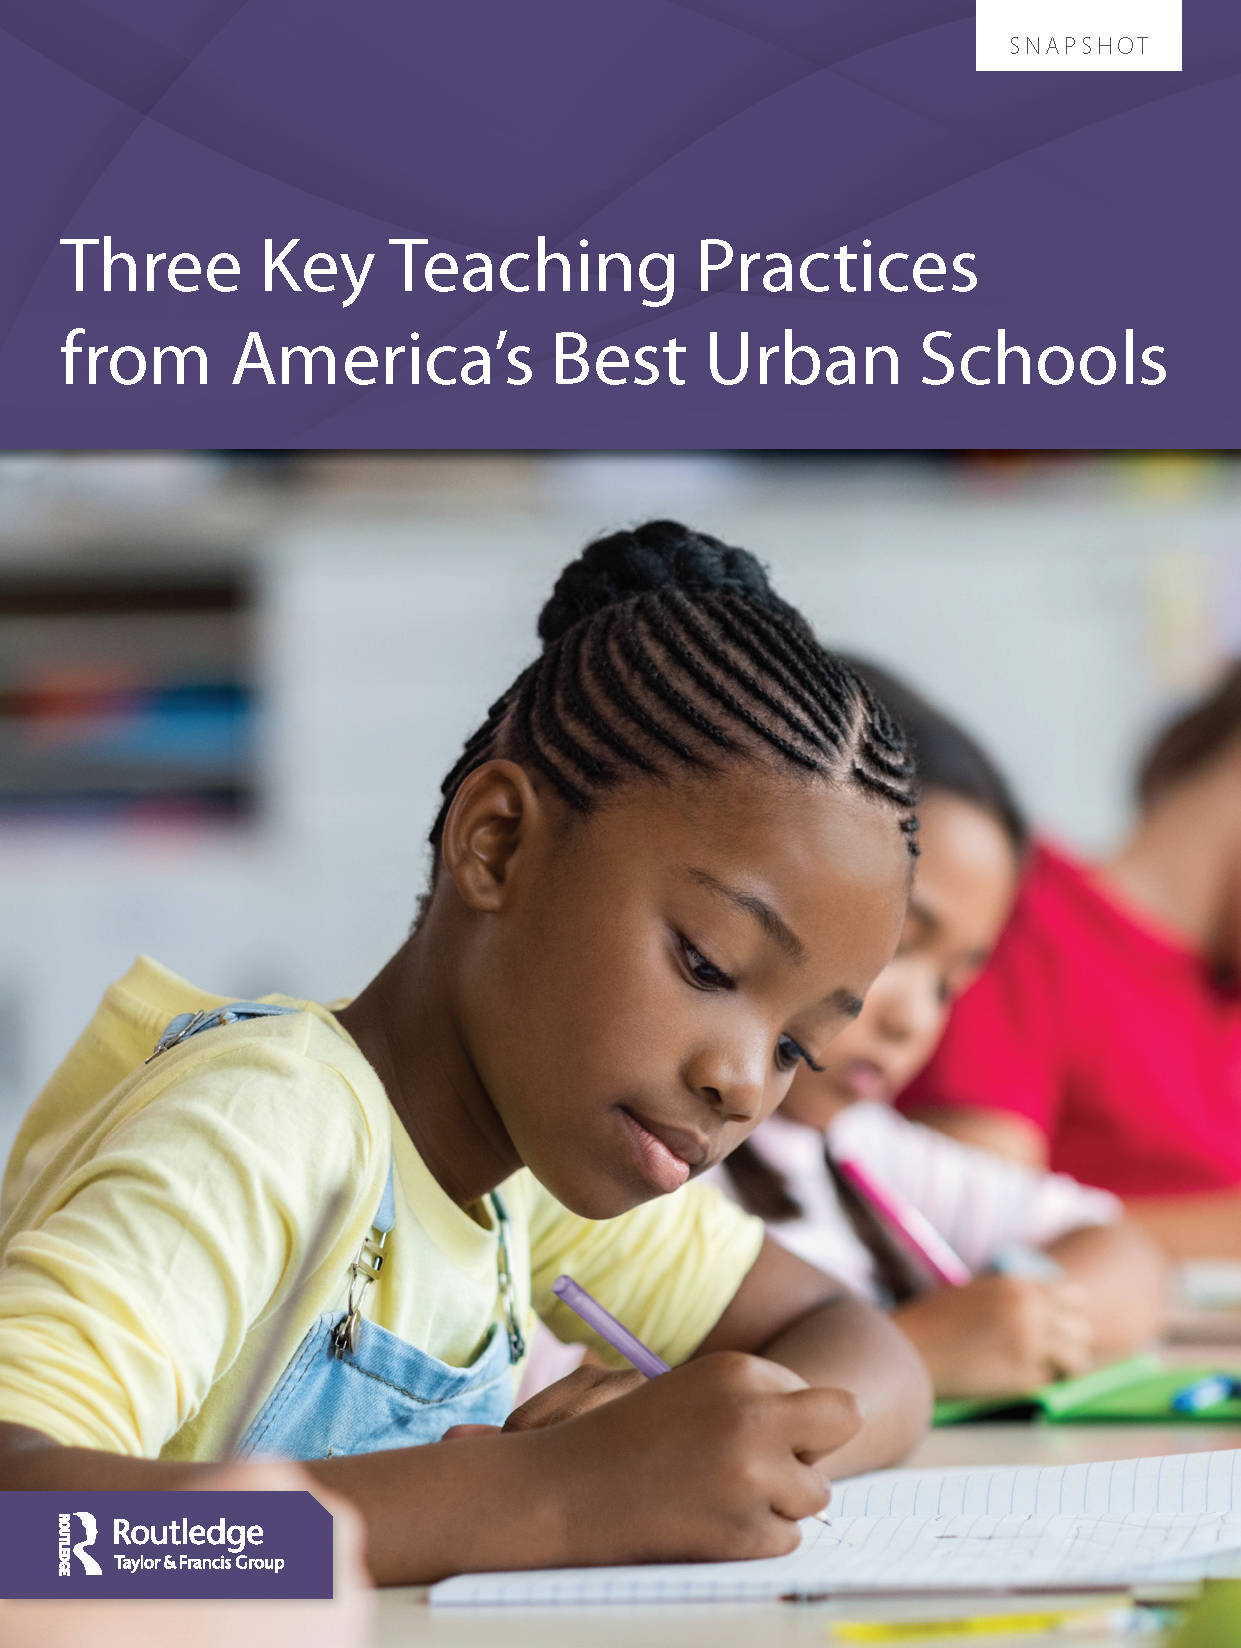 Three Key Teaching Practices from America's Best Urban Schools